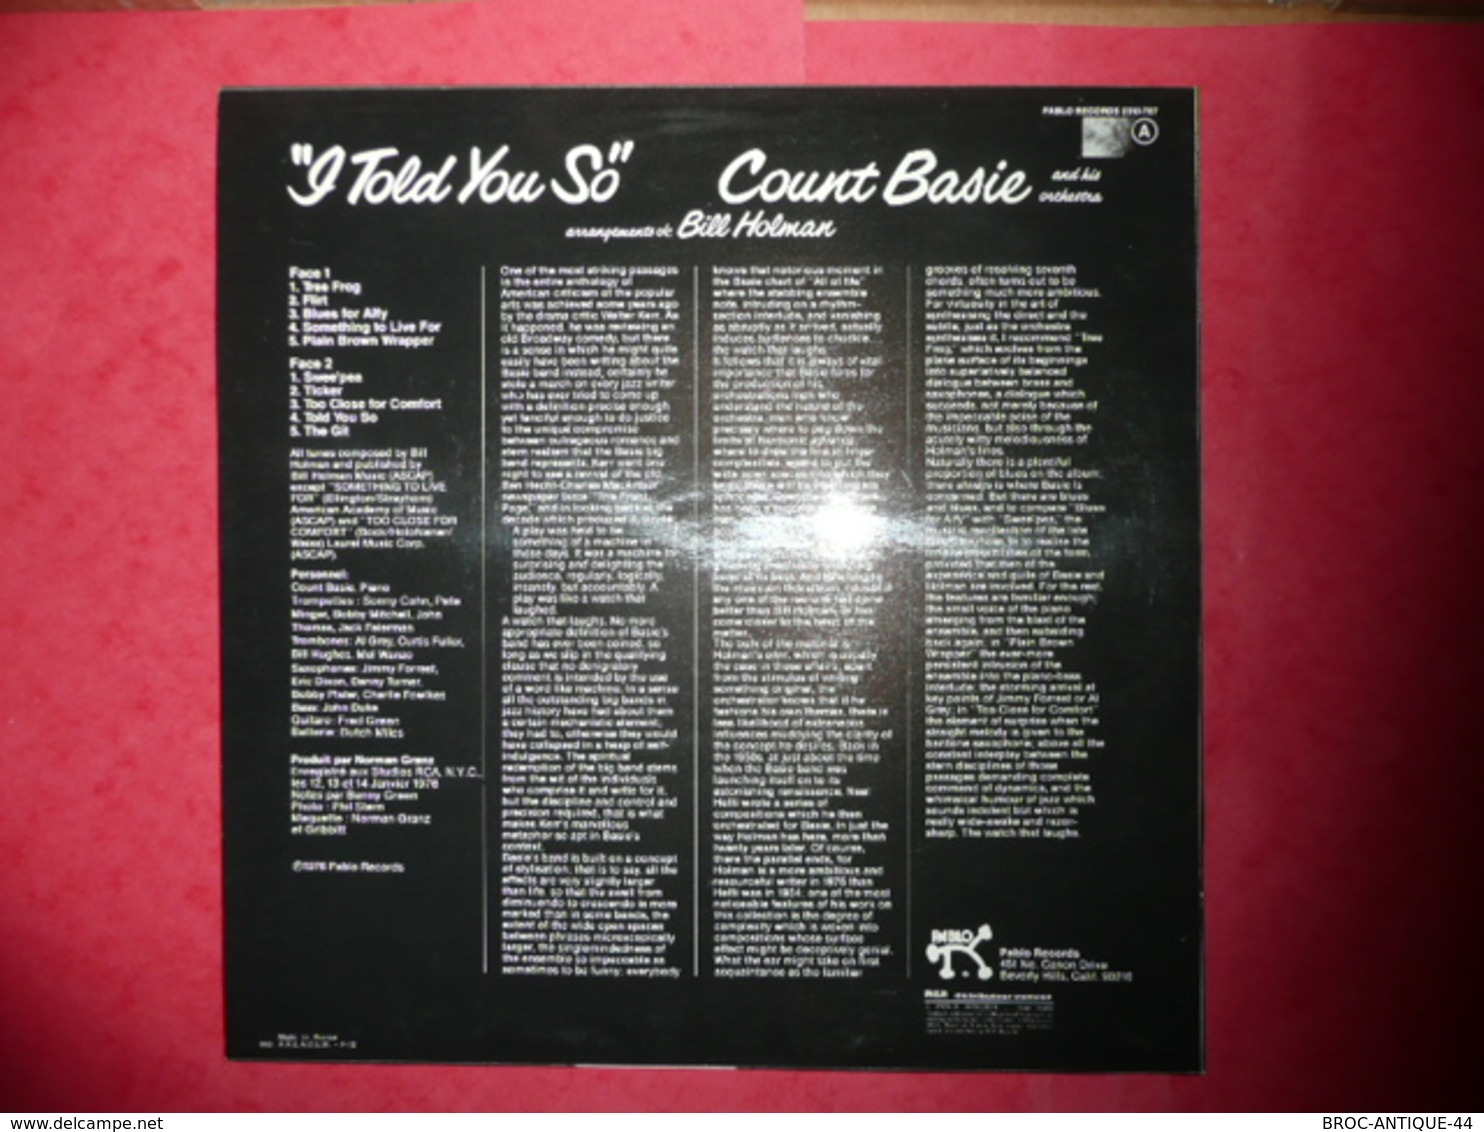 LP33 N°575 - COUNT BASIE - I TOLD YOU SO - COMPILATION 10 TITRES - Jazz